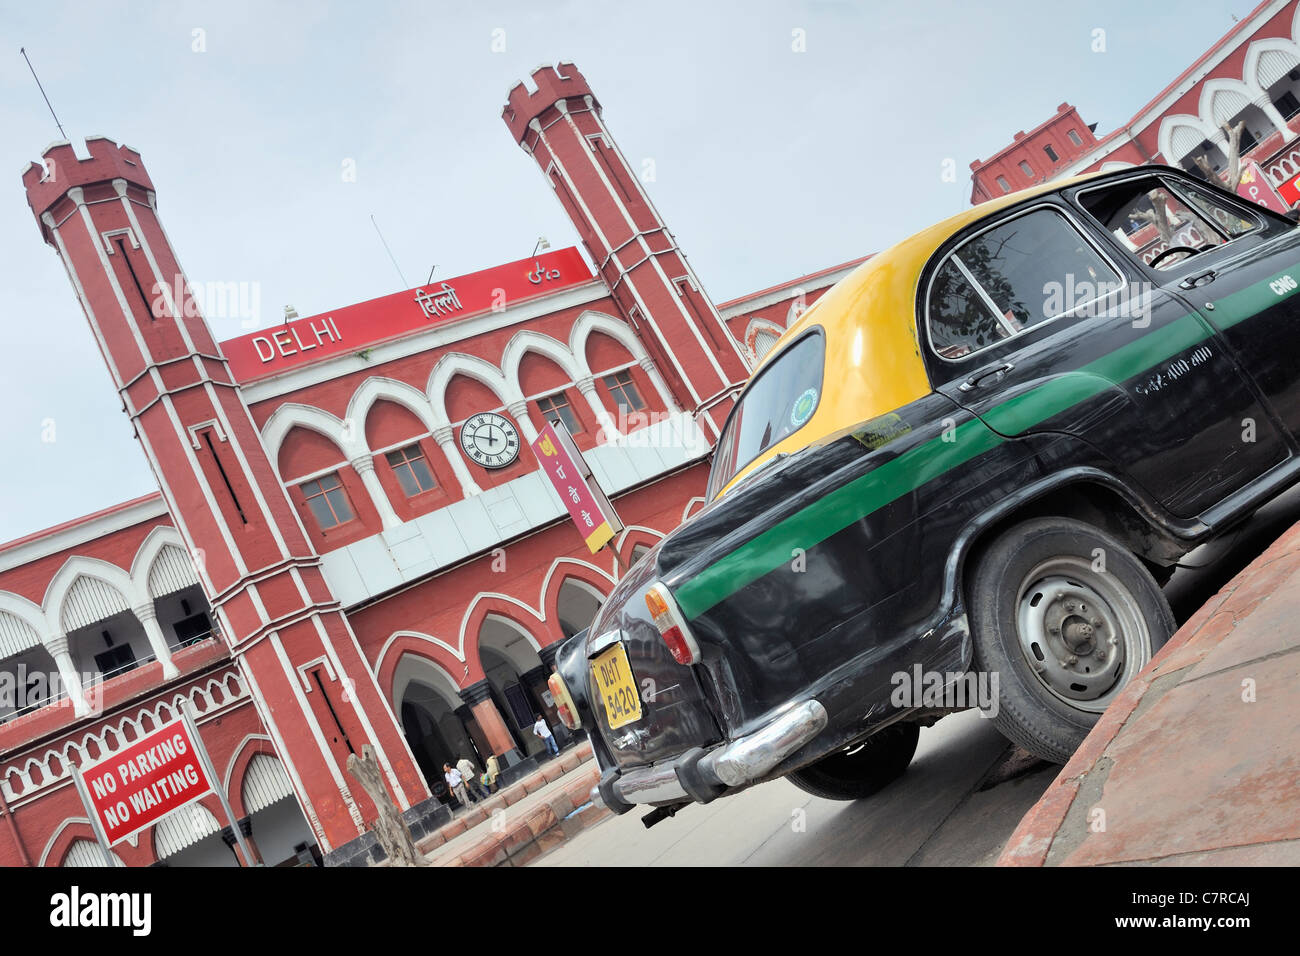 Vintage taxicab outside the Old Delhi railway station - Stock Image